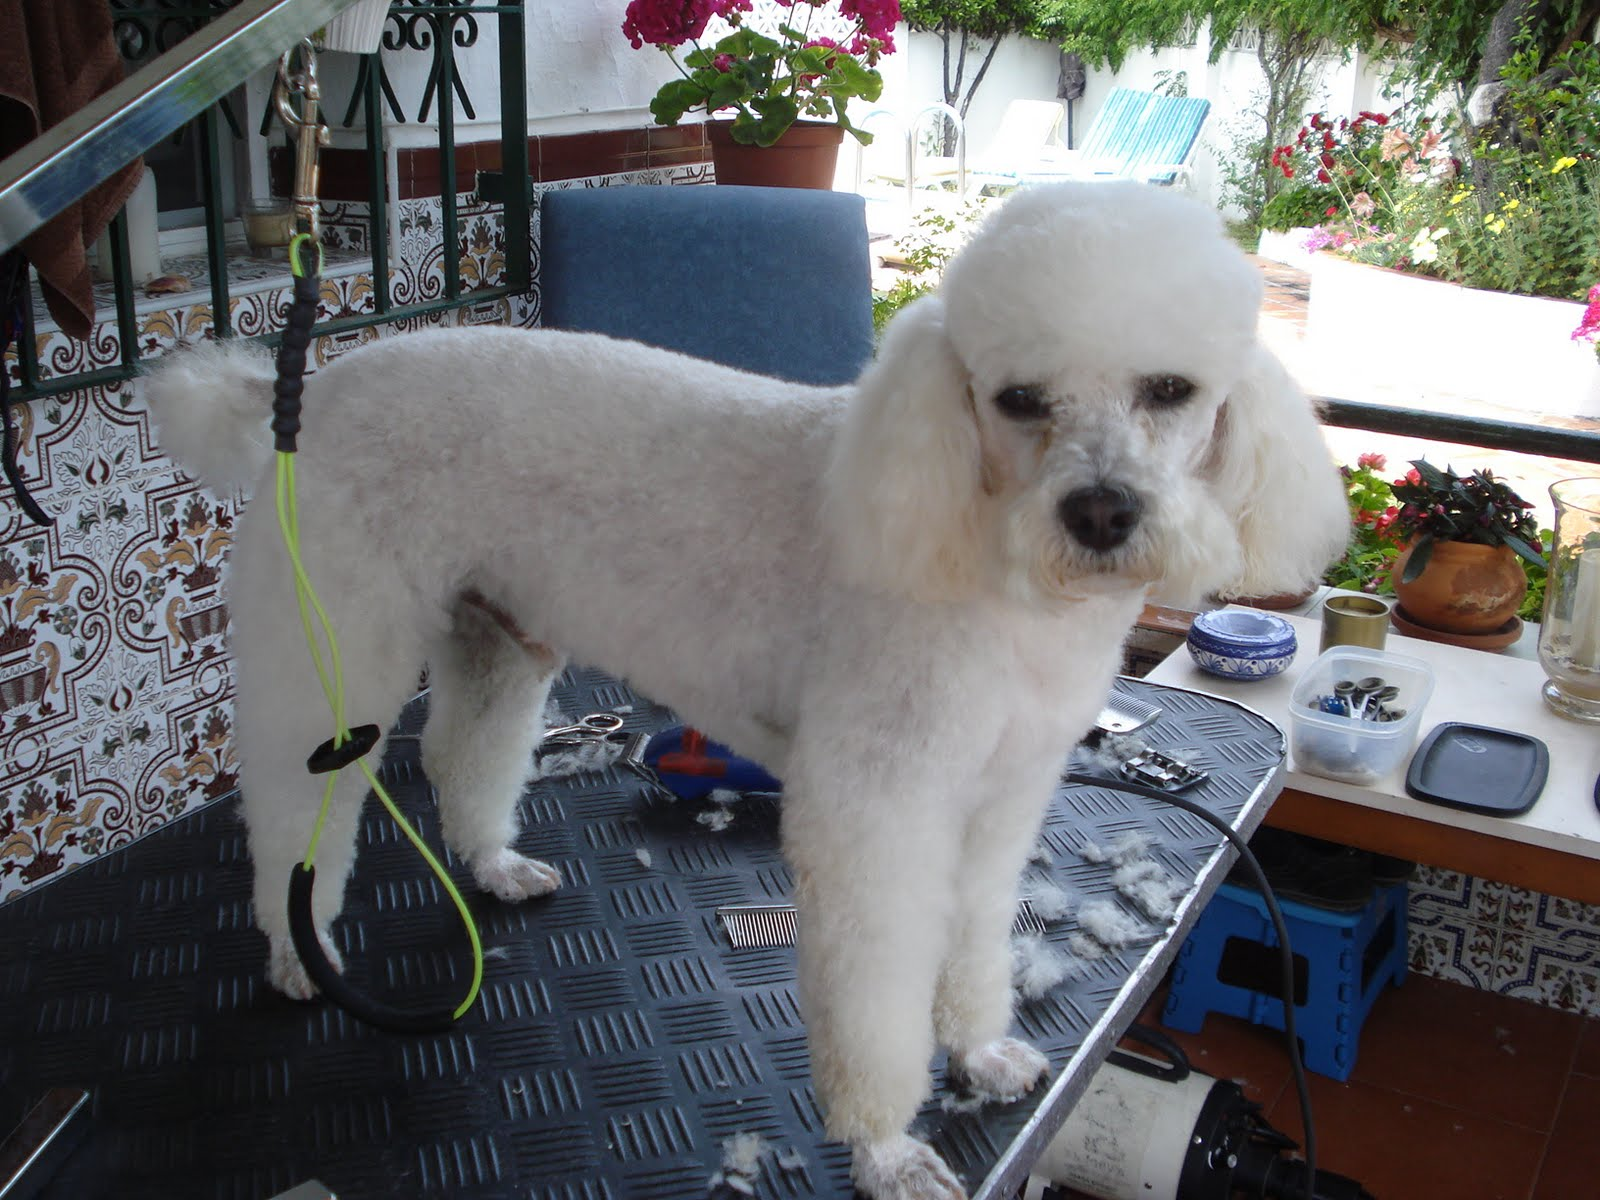 ... Groomer: Alfie - The Miniature Poodle - LAMB Cut with French Mustache